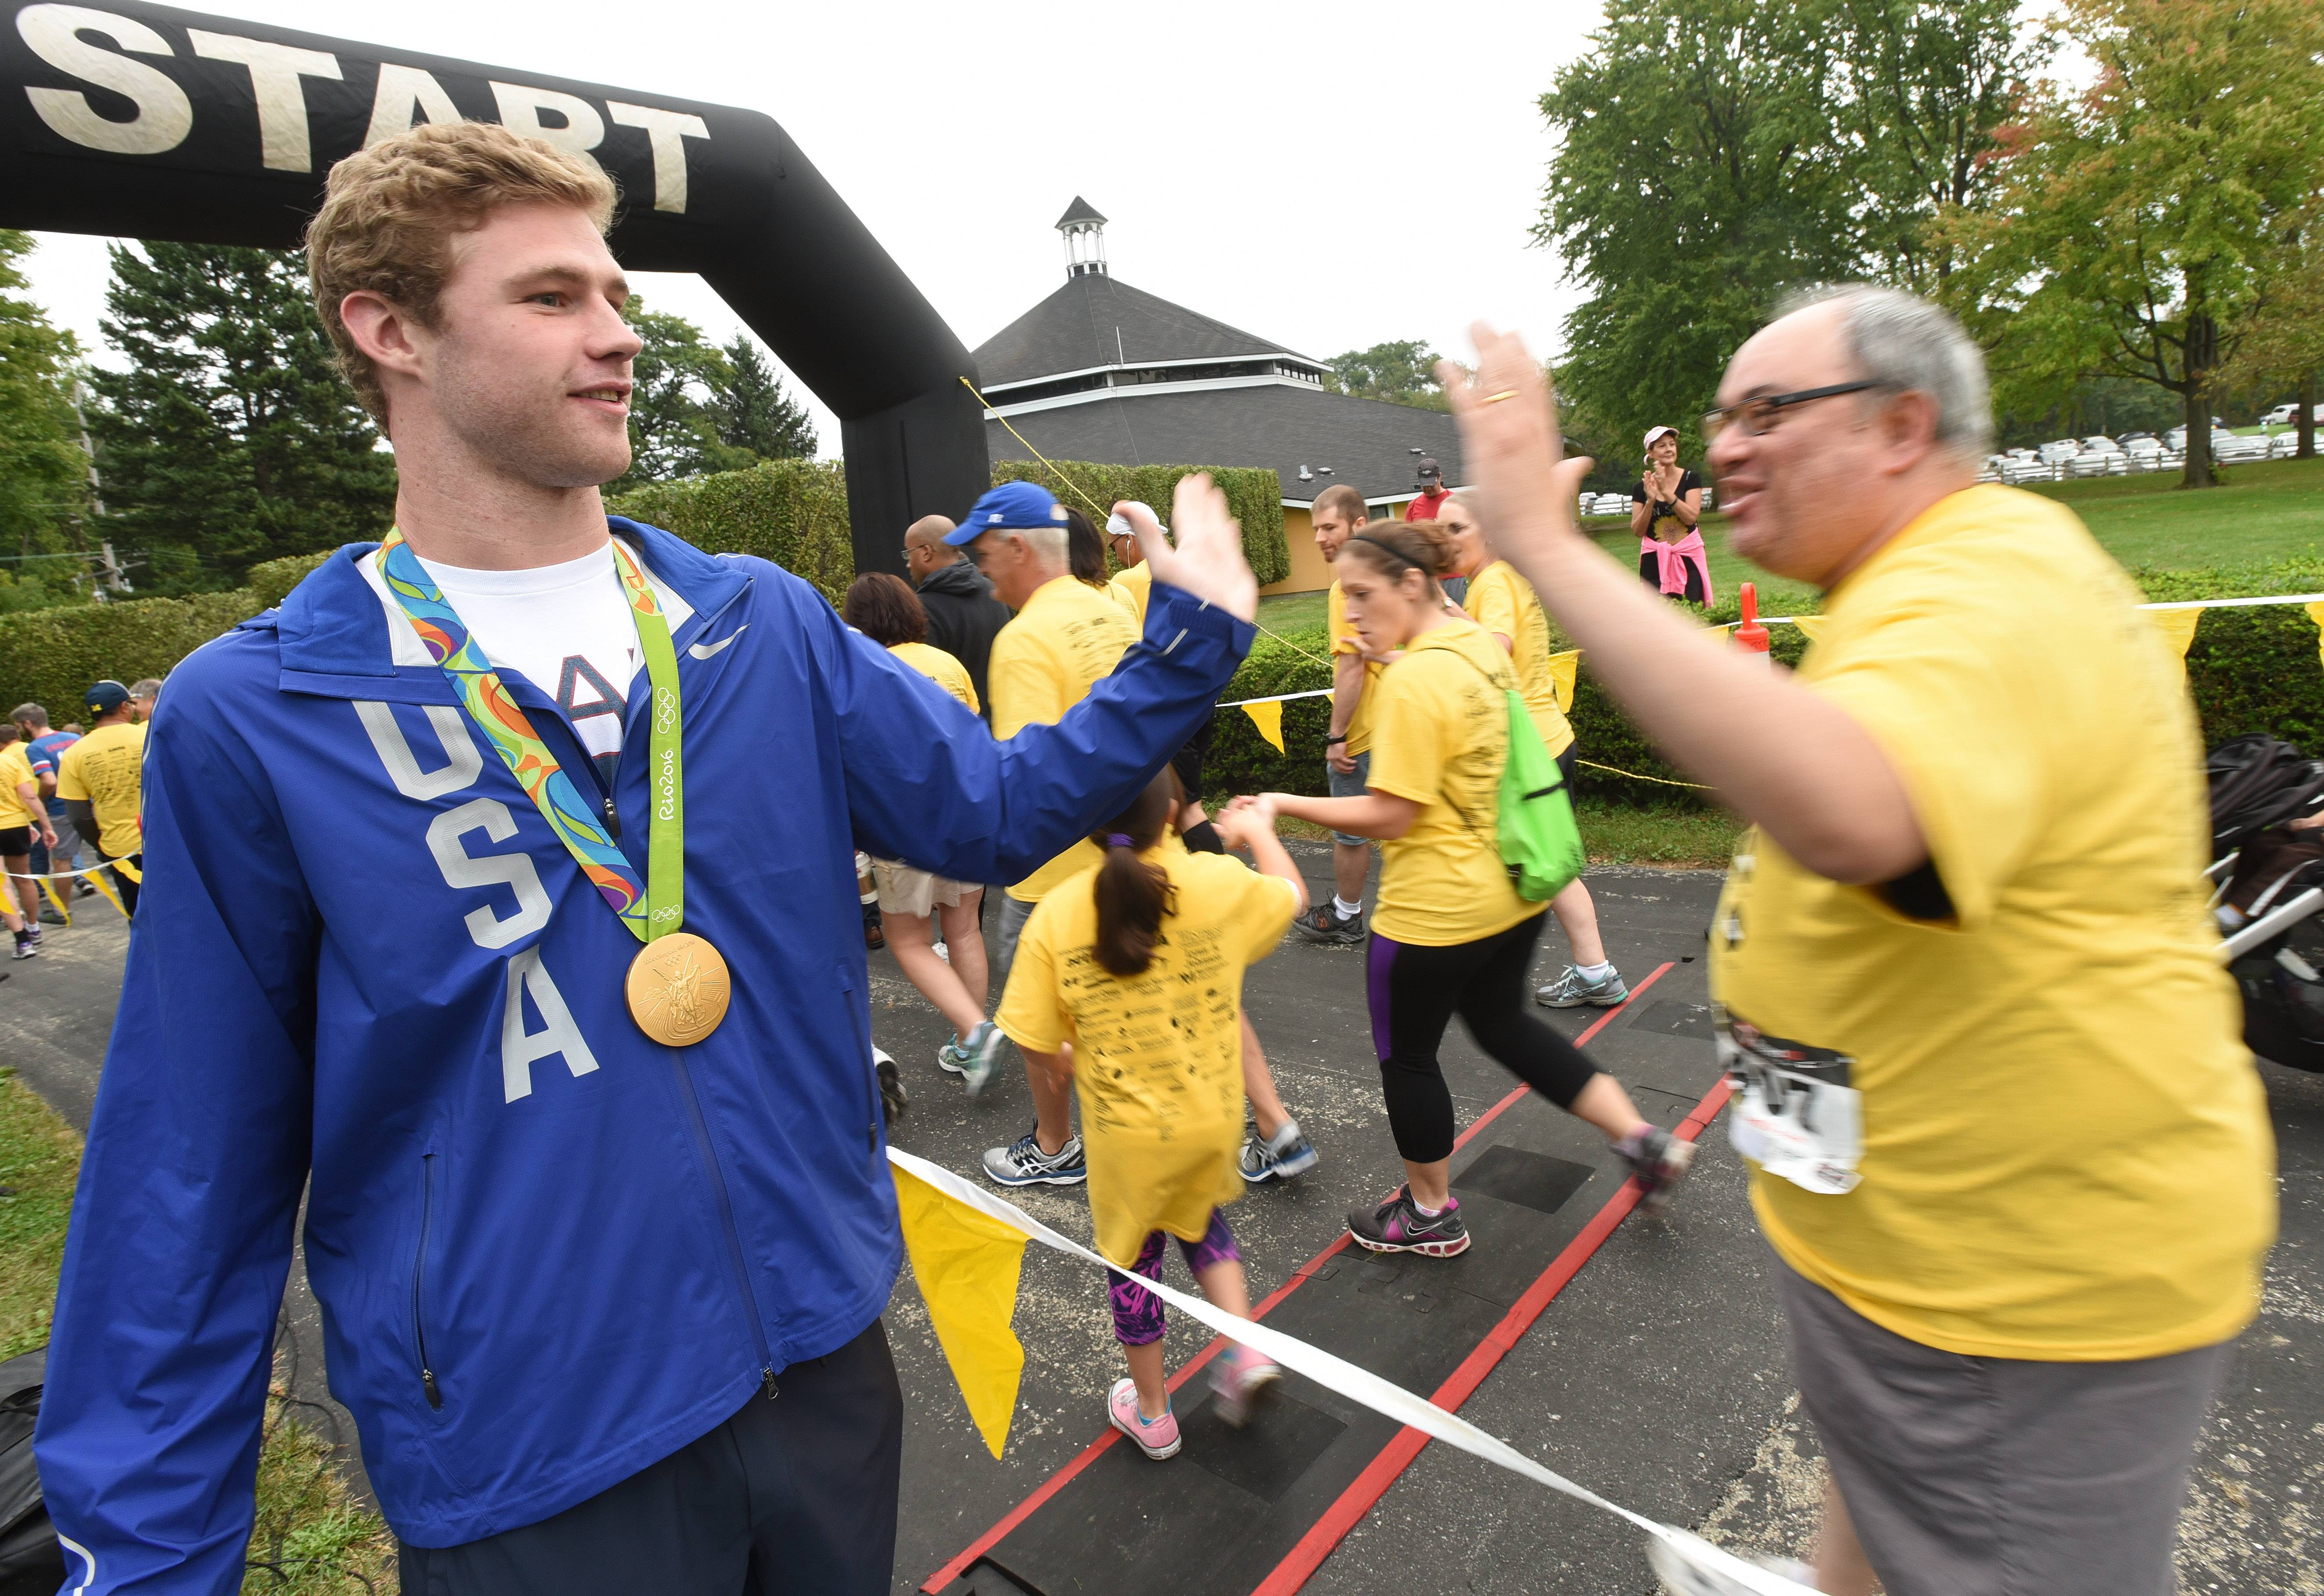 Olympic swimmer Kevin Cordes of Naperville high-fives runners as they start their run during Saturday's Run for the Mind at St. James Farm near Warrenville.